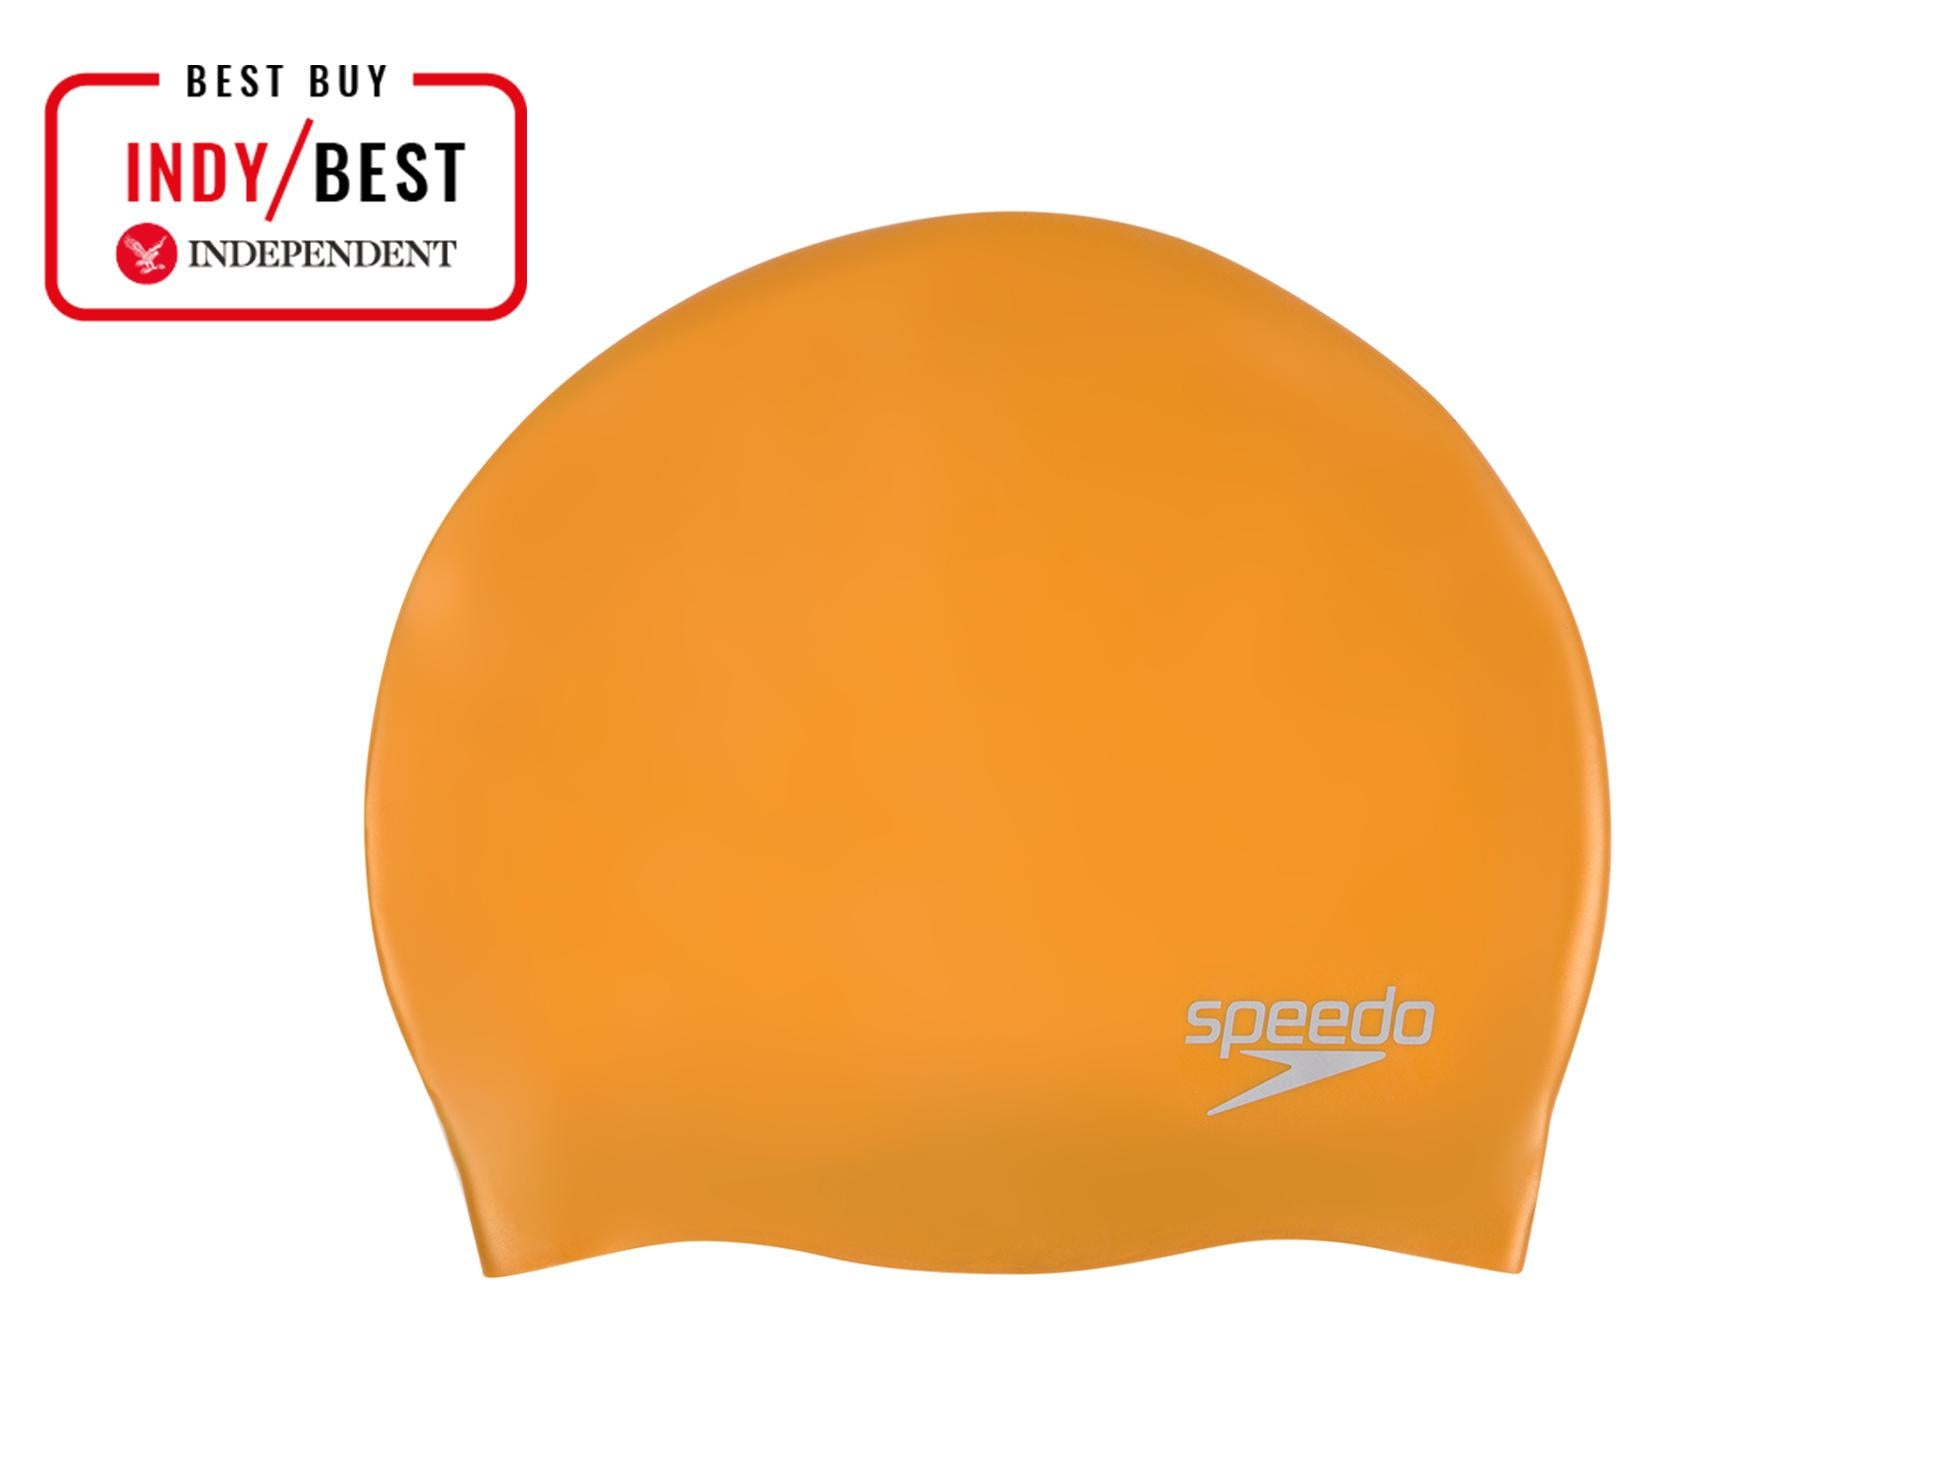 4b5ffd40d64 Speedo Plain Moulded Silicone Cap: £9, Speedo